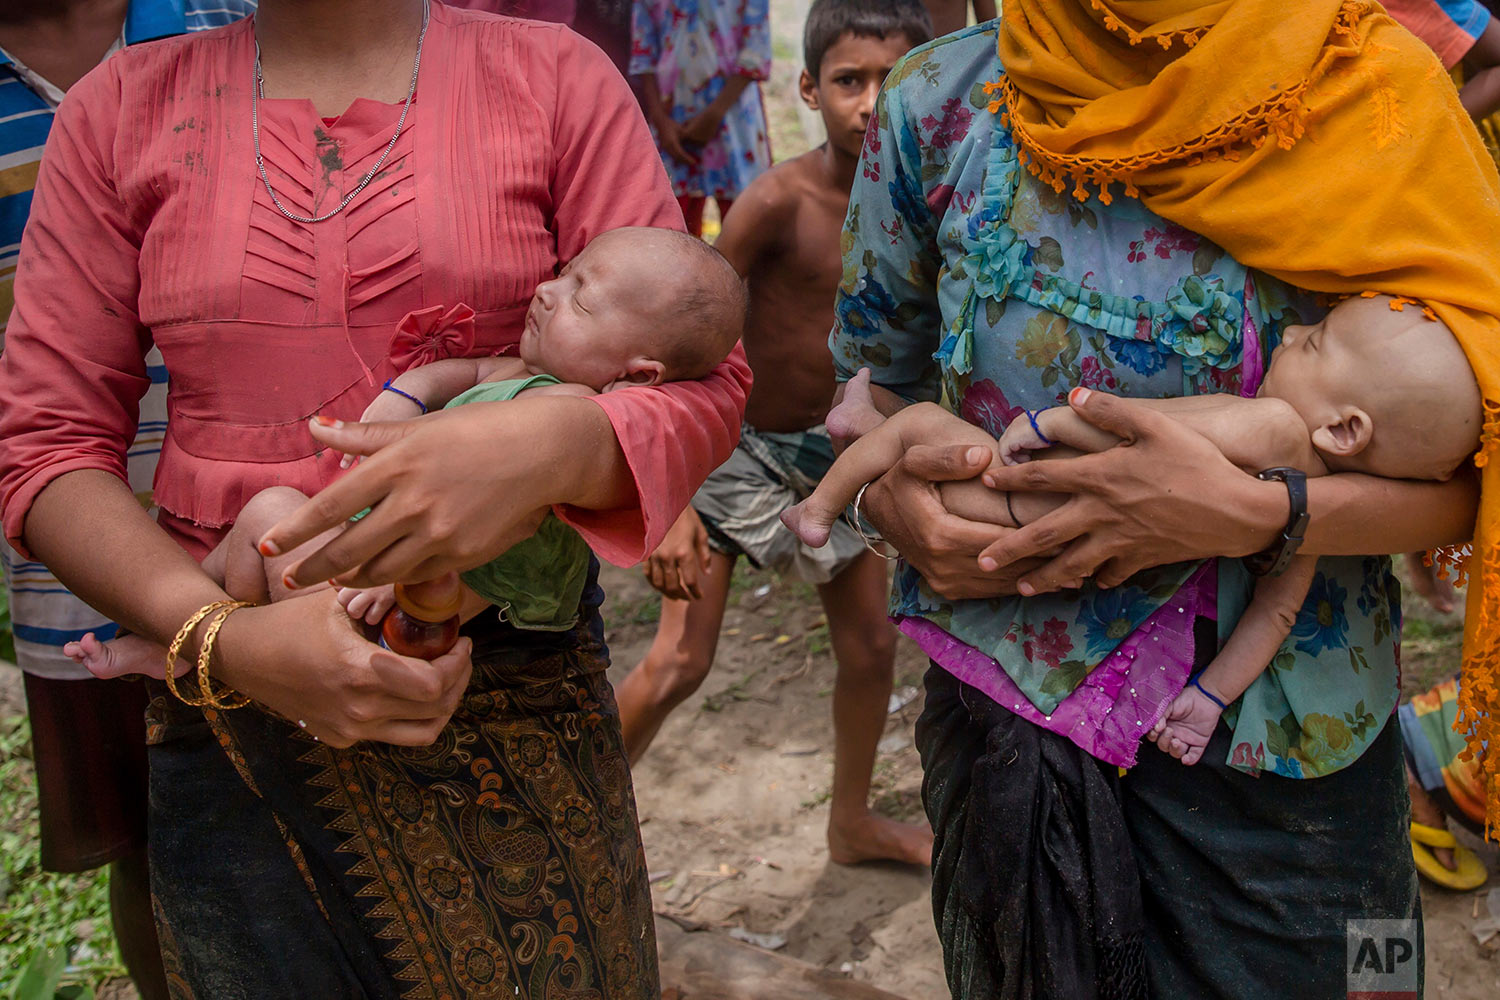 A Rohingya Muslim woman Hanida Begum, right, who crossed over from Myanmar into Bangladesh, holds her infant son Abdul Masood who died when the boat they were traveling in capsized minutes before reaching shore, as a relative holds Masood's twin brother, in Shah Porir Dwip, Bangladesh, Thursday, Sept. 14, 2017. (AP Photo/Dar Yasin)